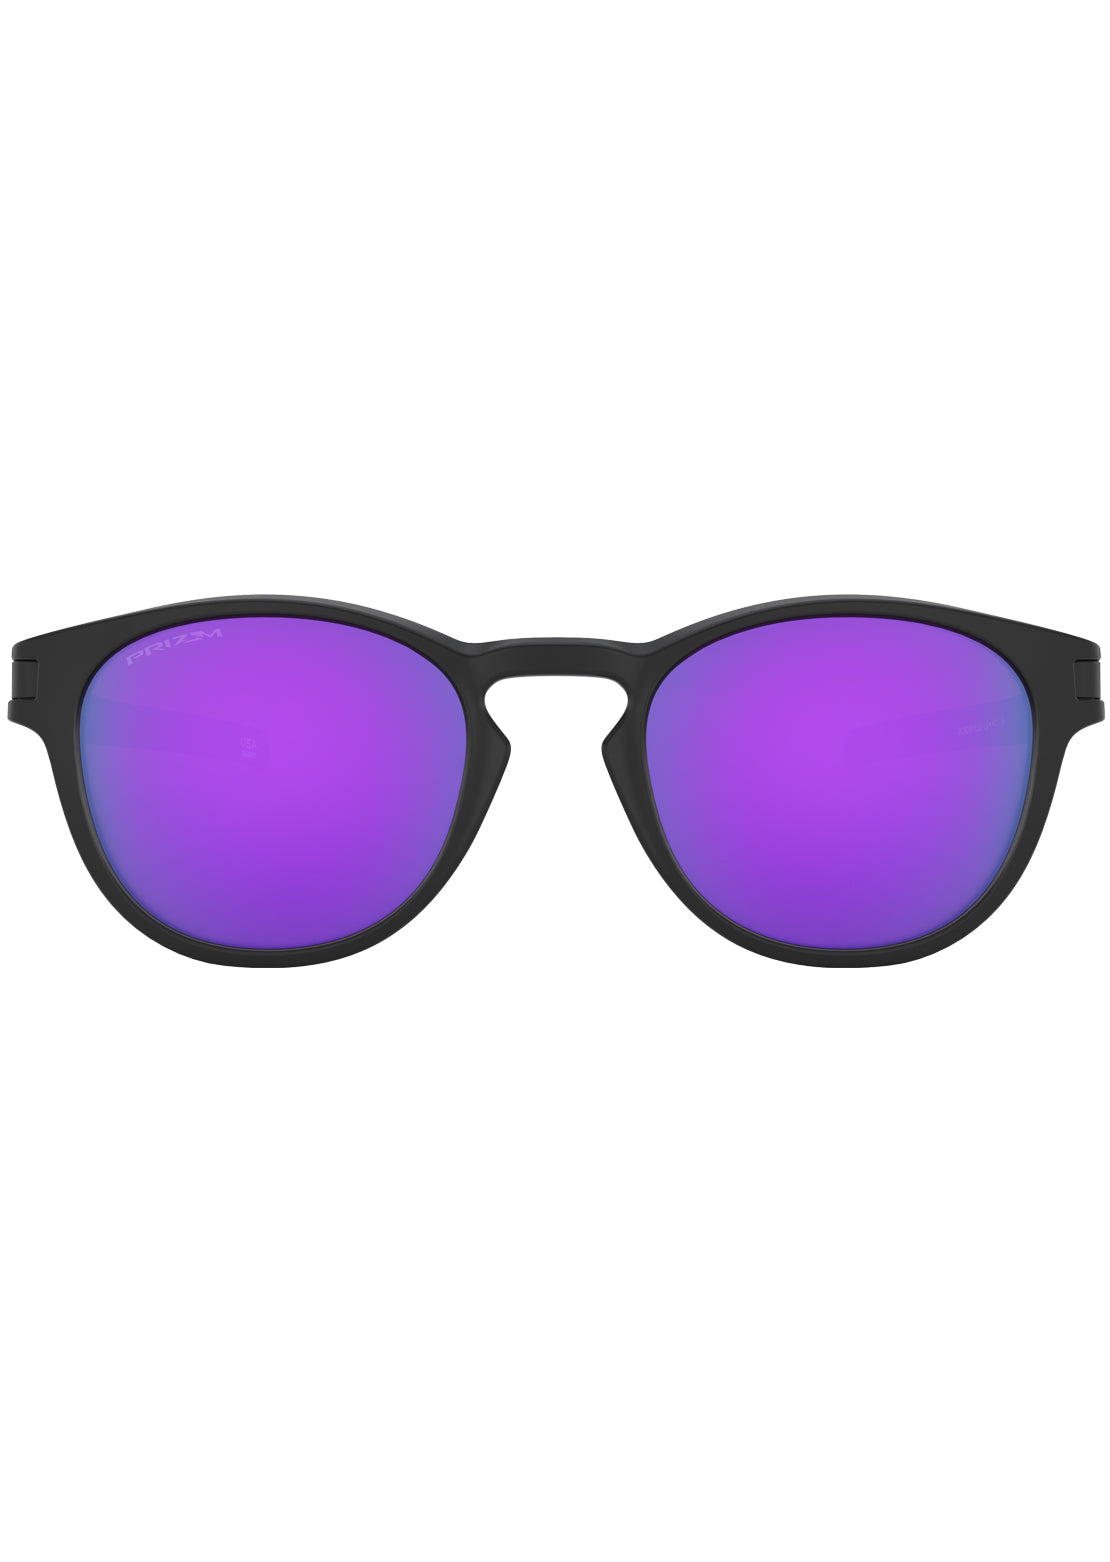 Oakley Men's Latch Prizm Sunglasses Matte Black/Prizm Violet Iridium